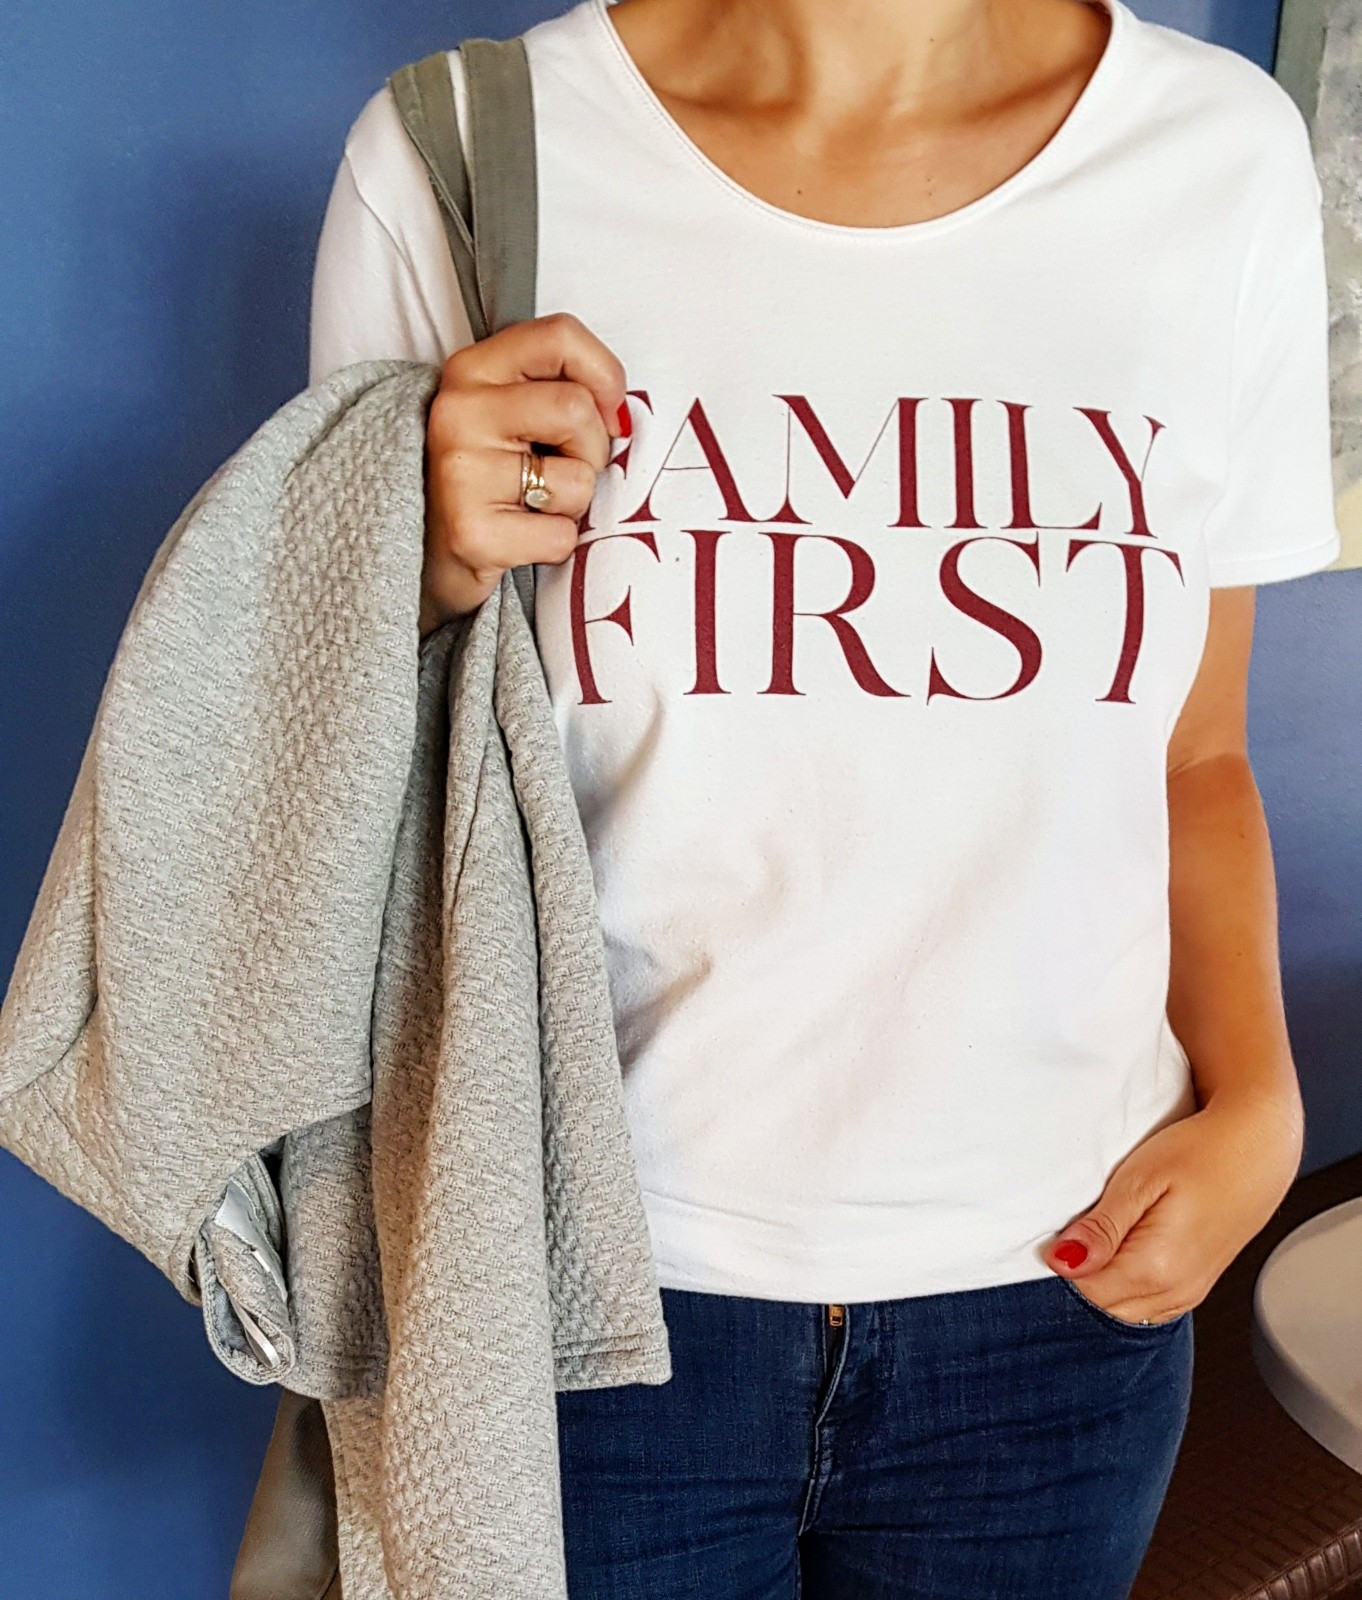 Family-first-tshirt